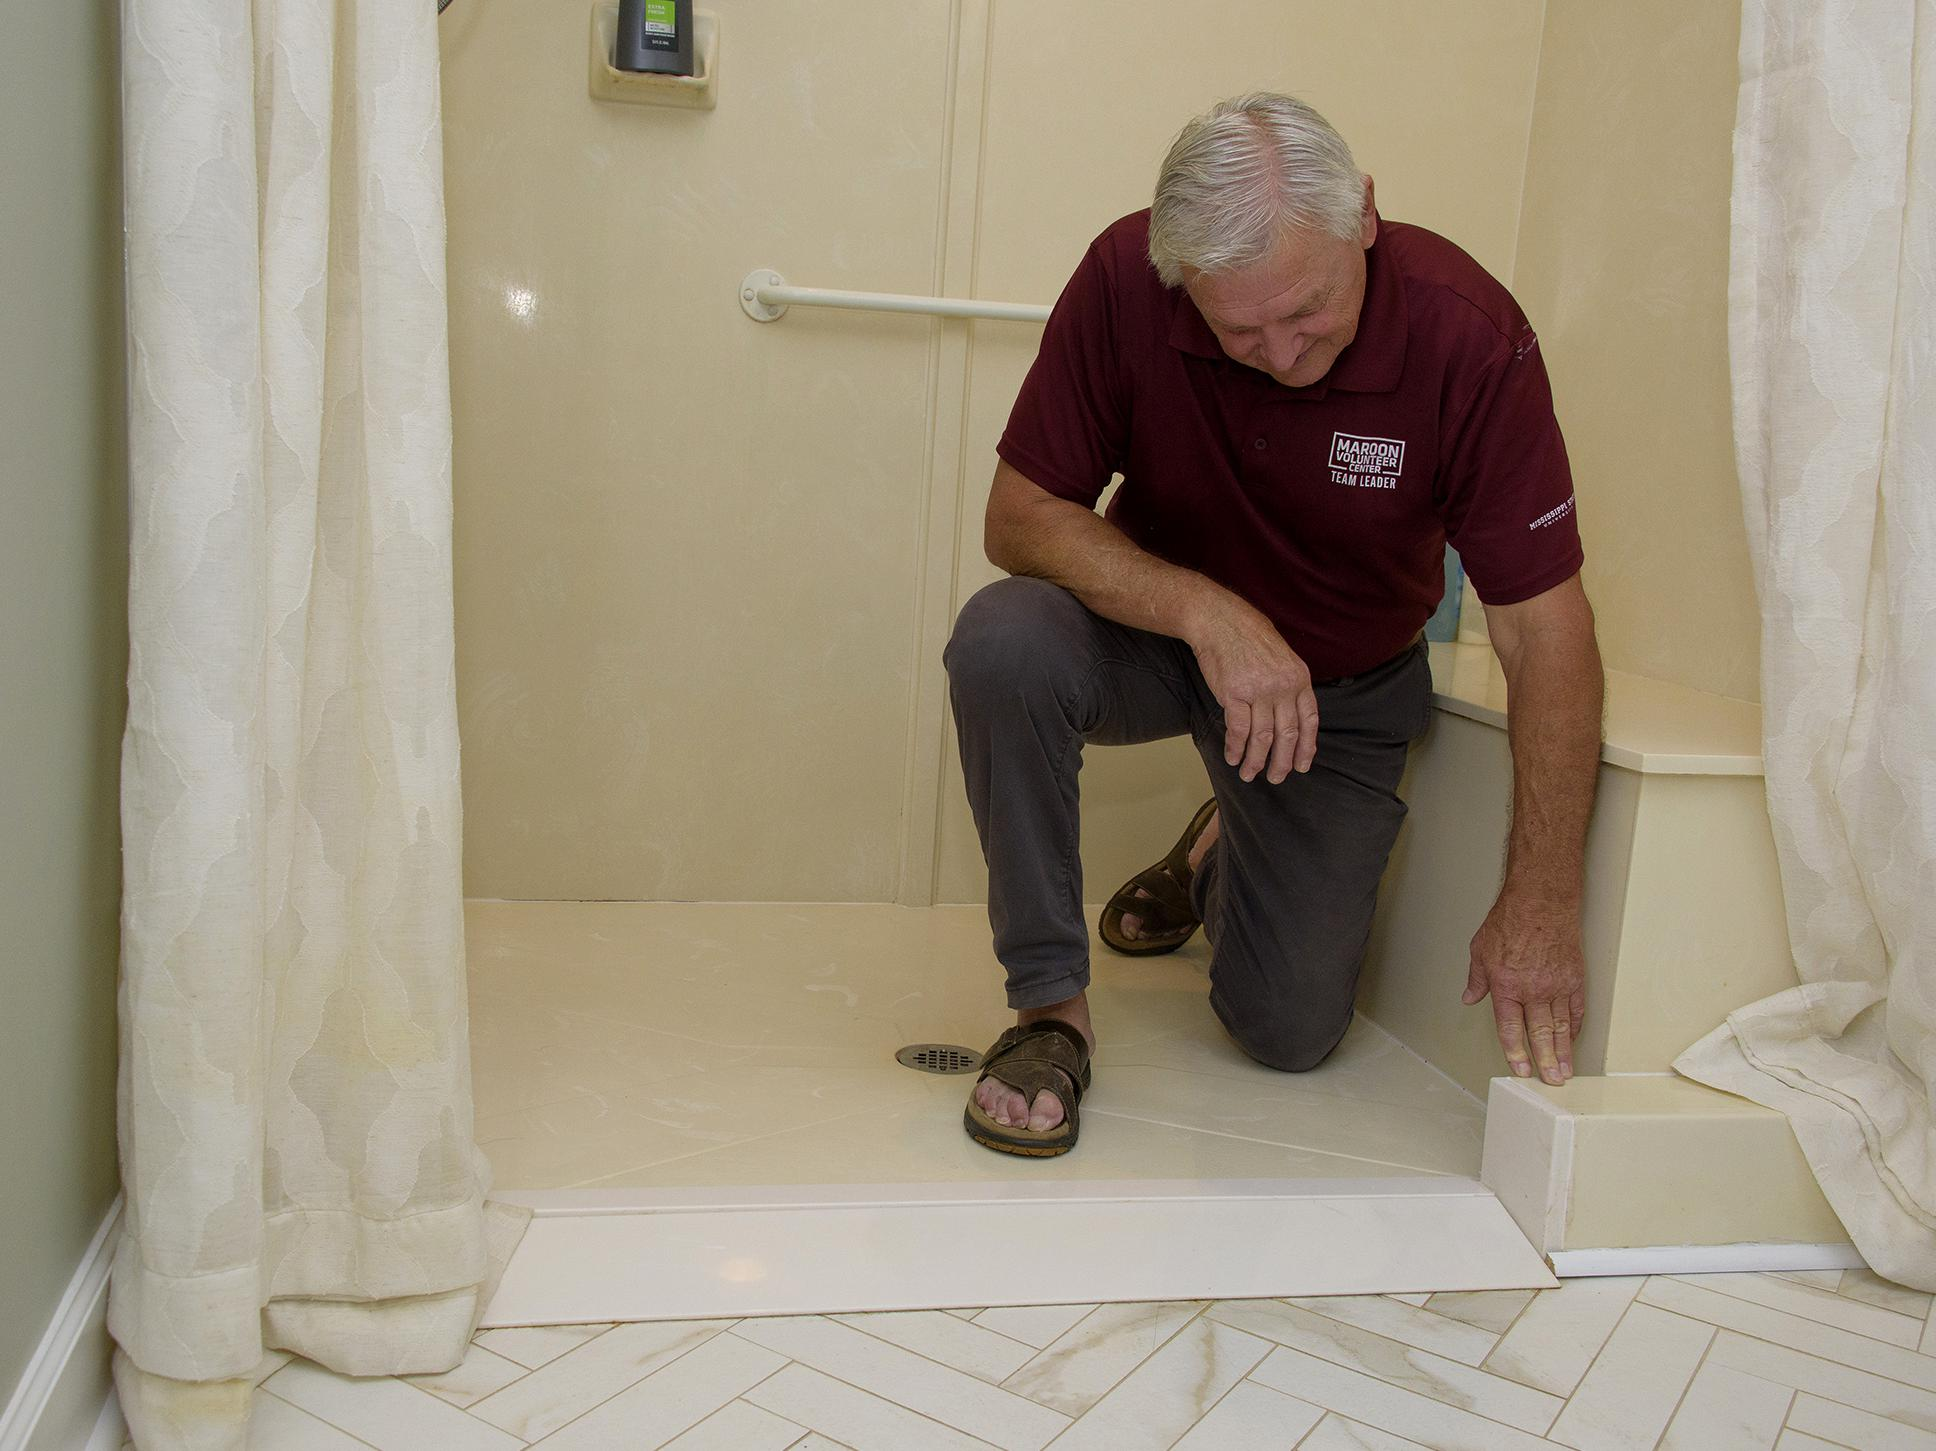 A man kneels in a walk-in shower, reaching down to a point in the entryway.